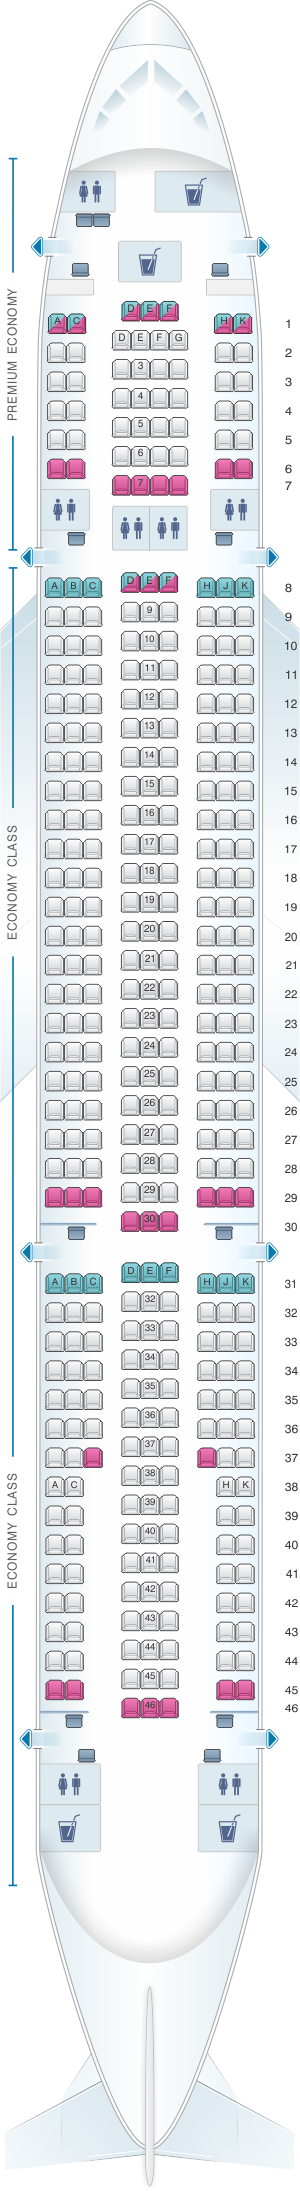 Seat map for Monarch Airlines Airbus A330 200